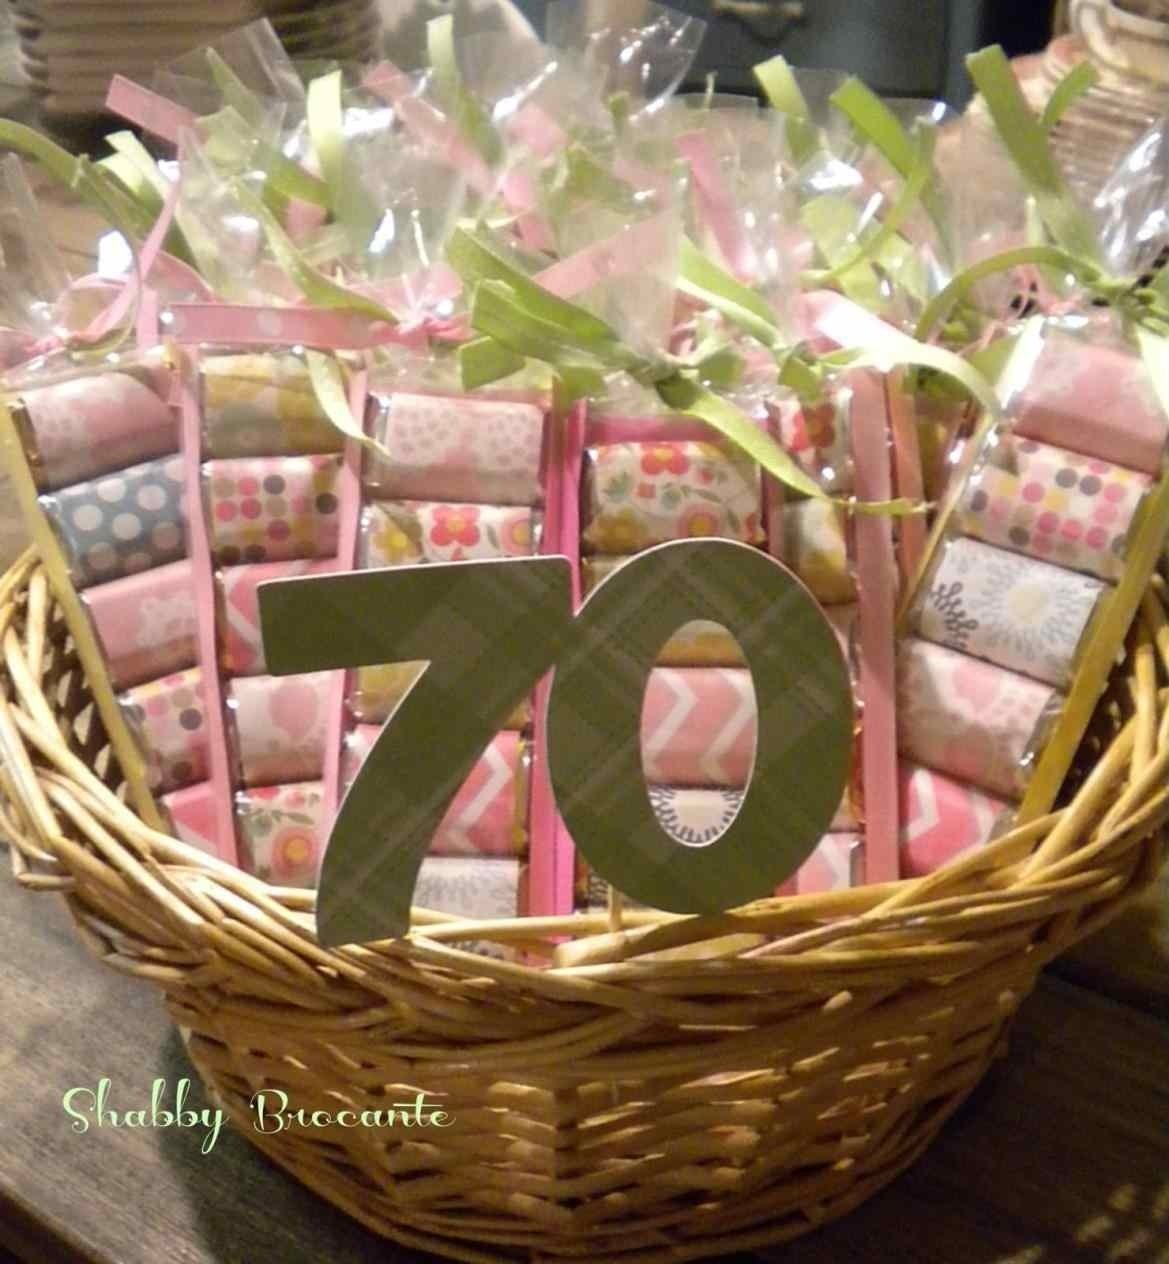 10 Awesome Goodie Bag Ideas For Adults modern home favor inexpensive party favors for adults ideas modern 2021